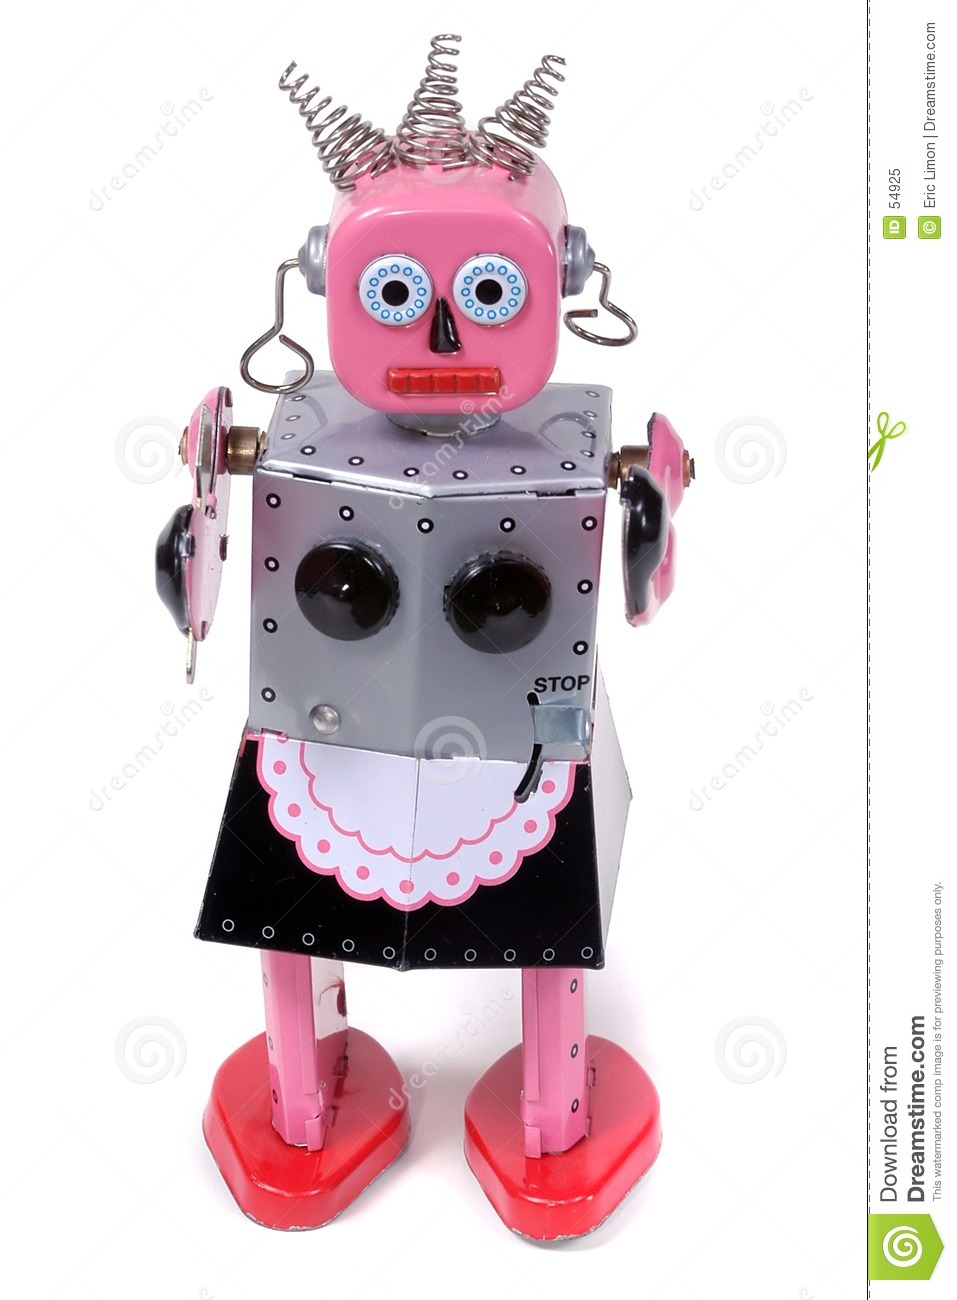 Vintage Robot Toy Stock Image. Image Of Maid